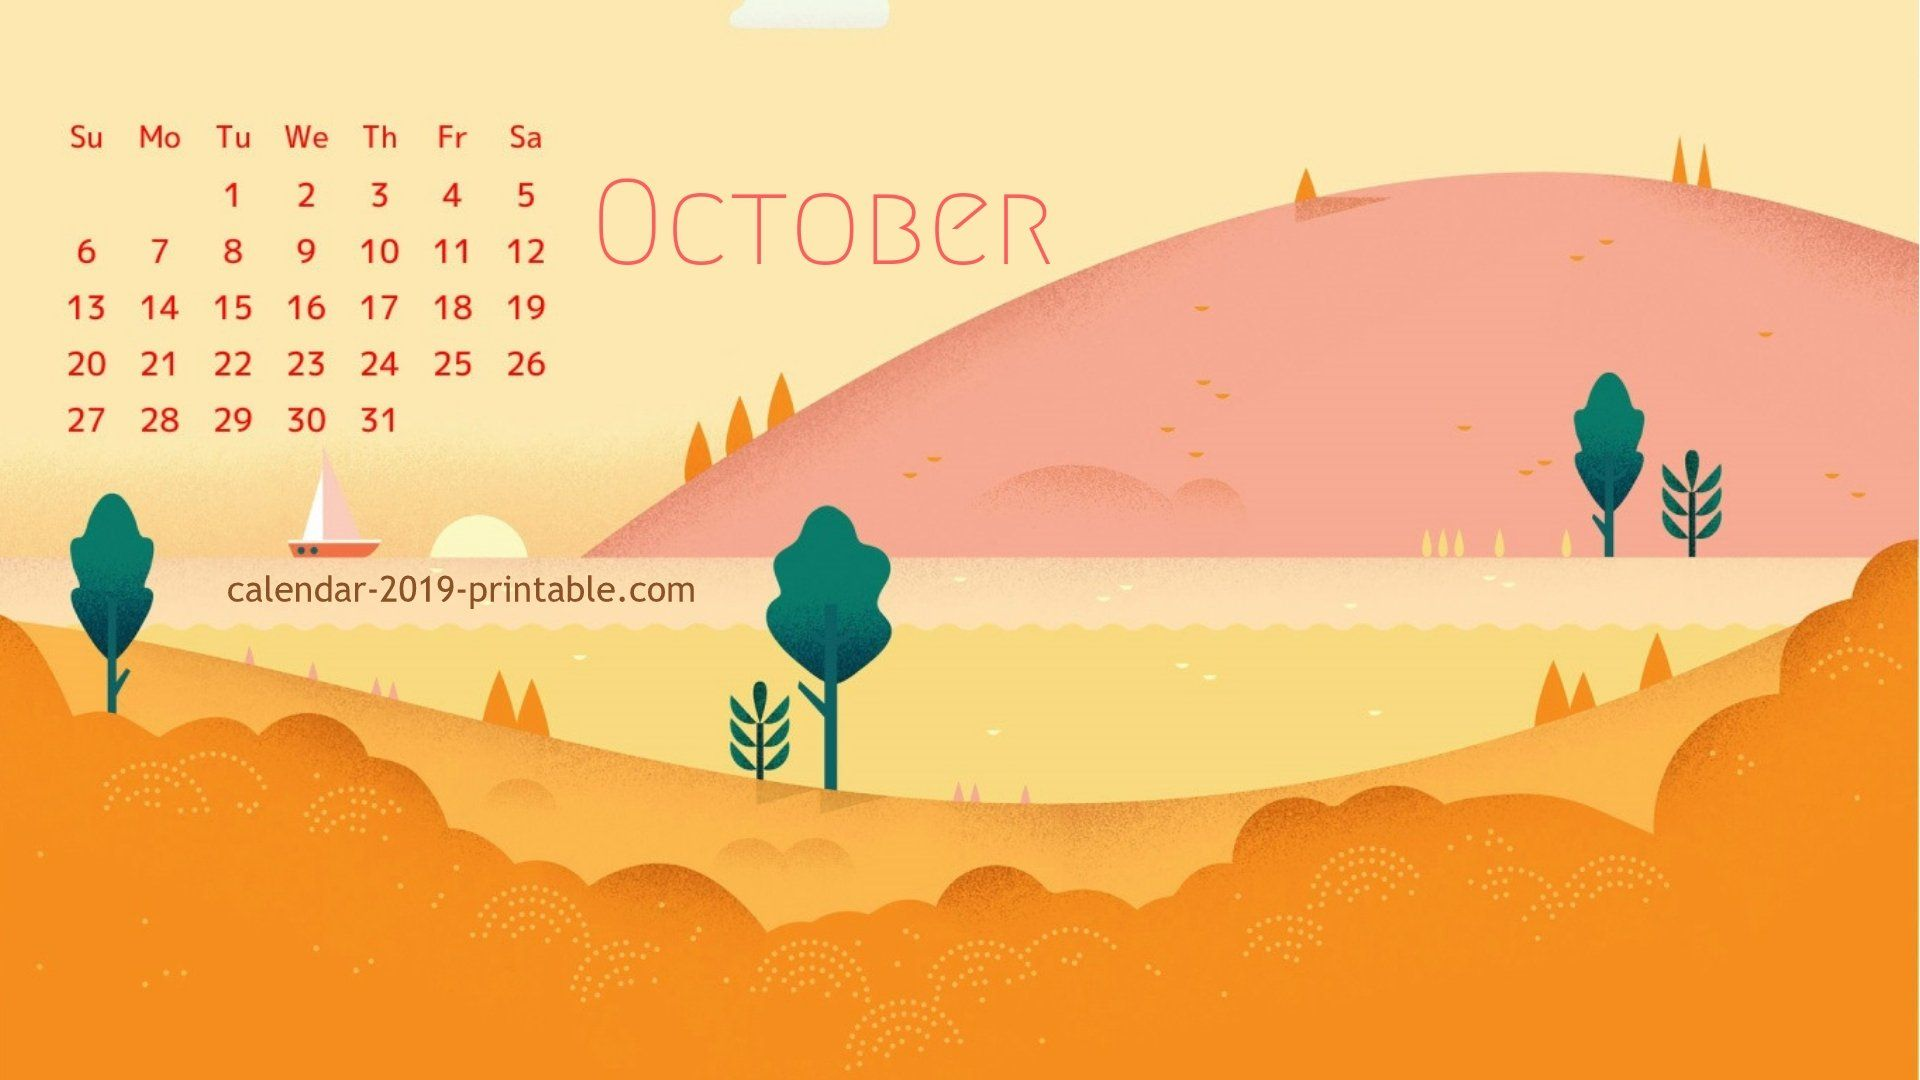 october 2019 calendar wallpaper Calendar wallpaper, 2019